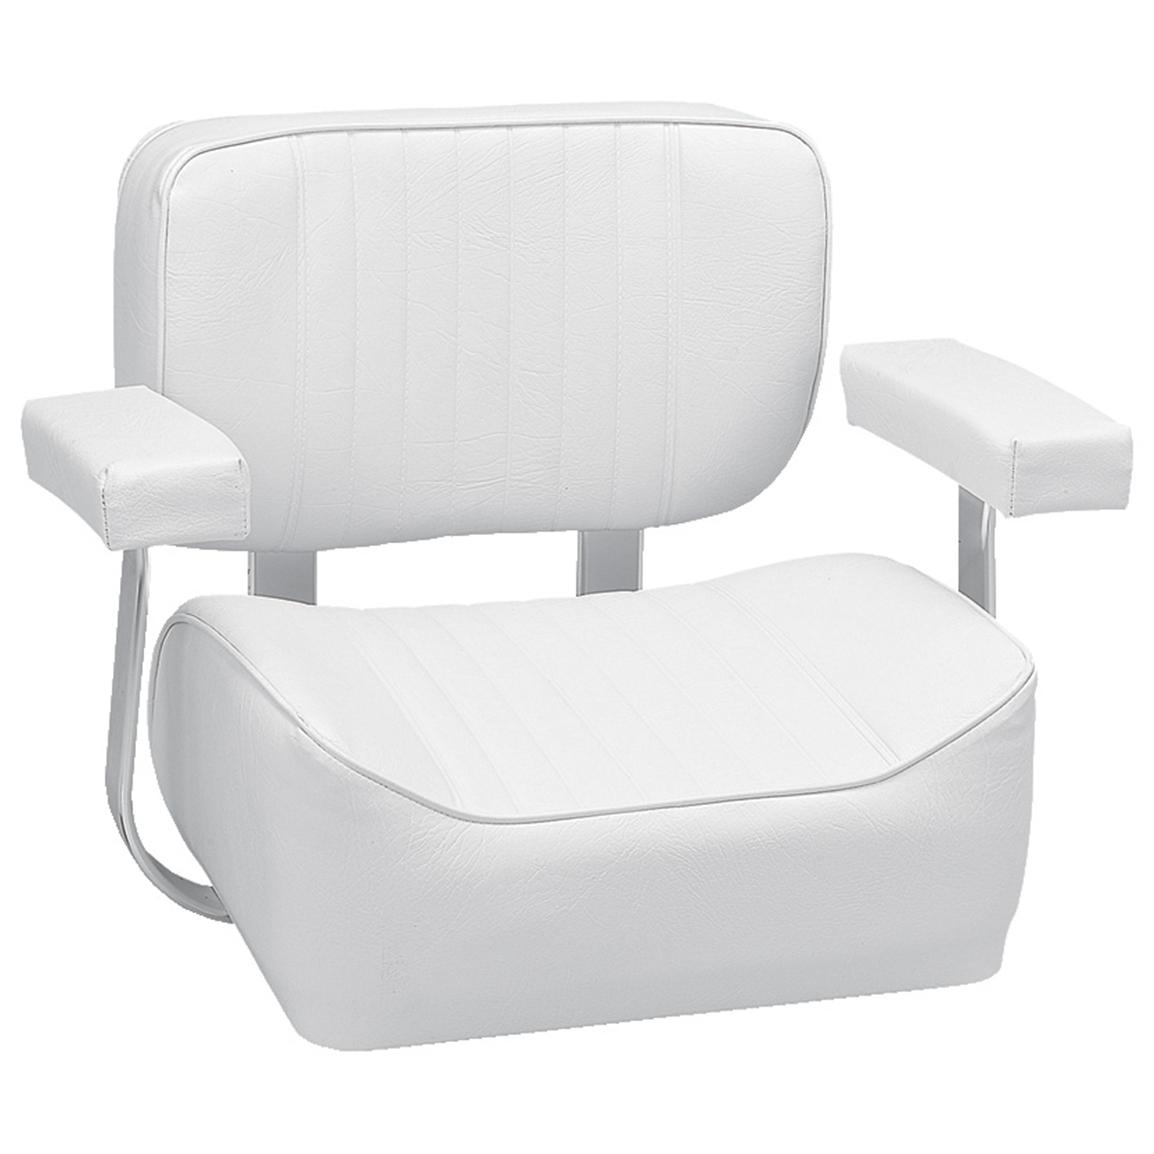 fishing chair with arms walker bouncing wise offshore deluxe helm arm rests white